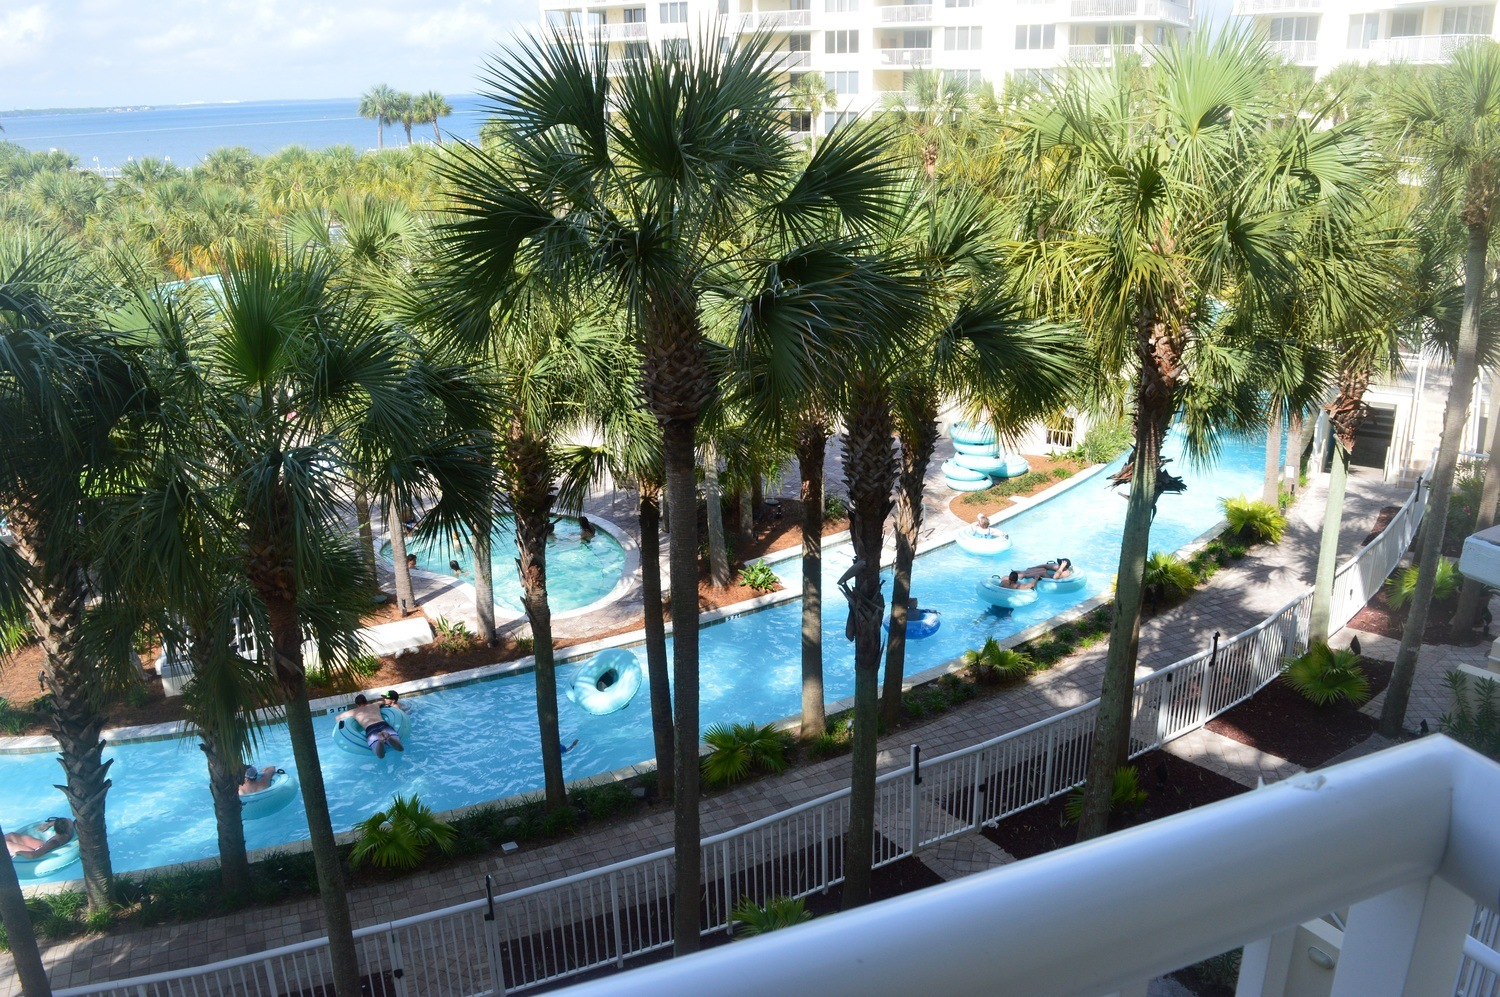 destin west remodeled bayside over the lazy river rh bwrentalsdestin com condos for rent in destin florida with lazy river condos destin florida beachfront lazy river